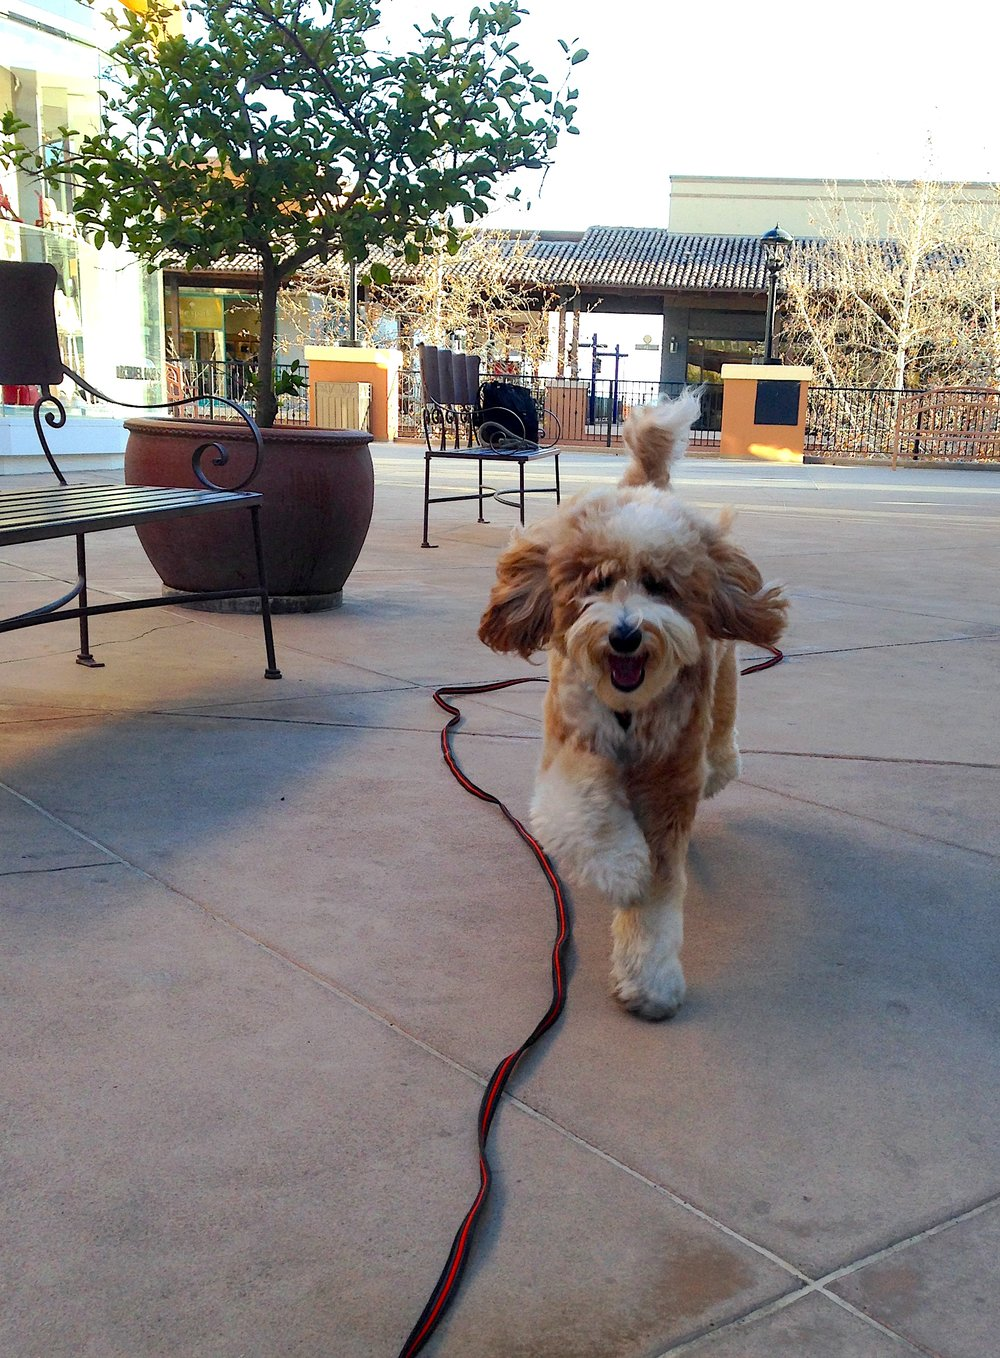 Bernie McSquare runs at me, ears flapping in the wind, as he demonstrates his recall ability at La Encantada Shopping Center in Tucson, Arizona.